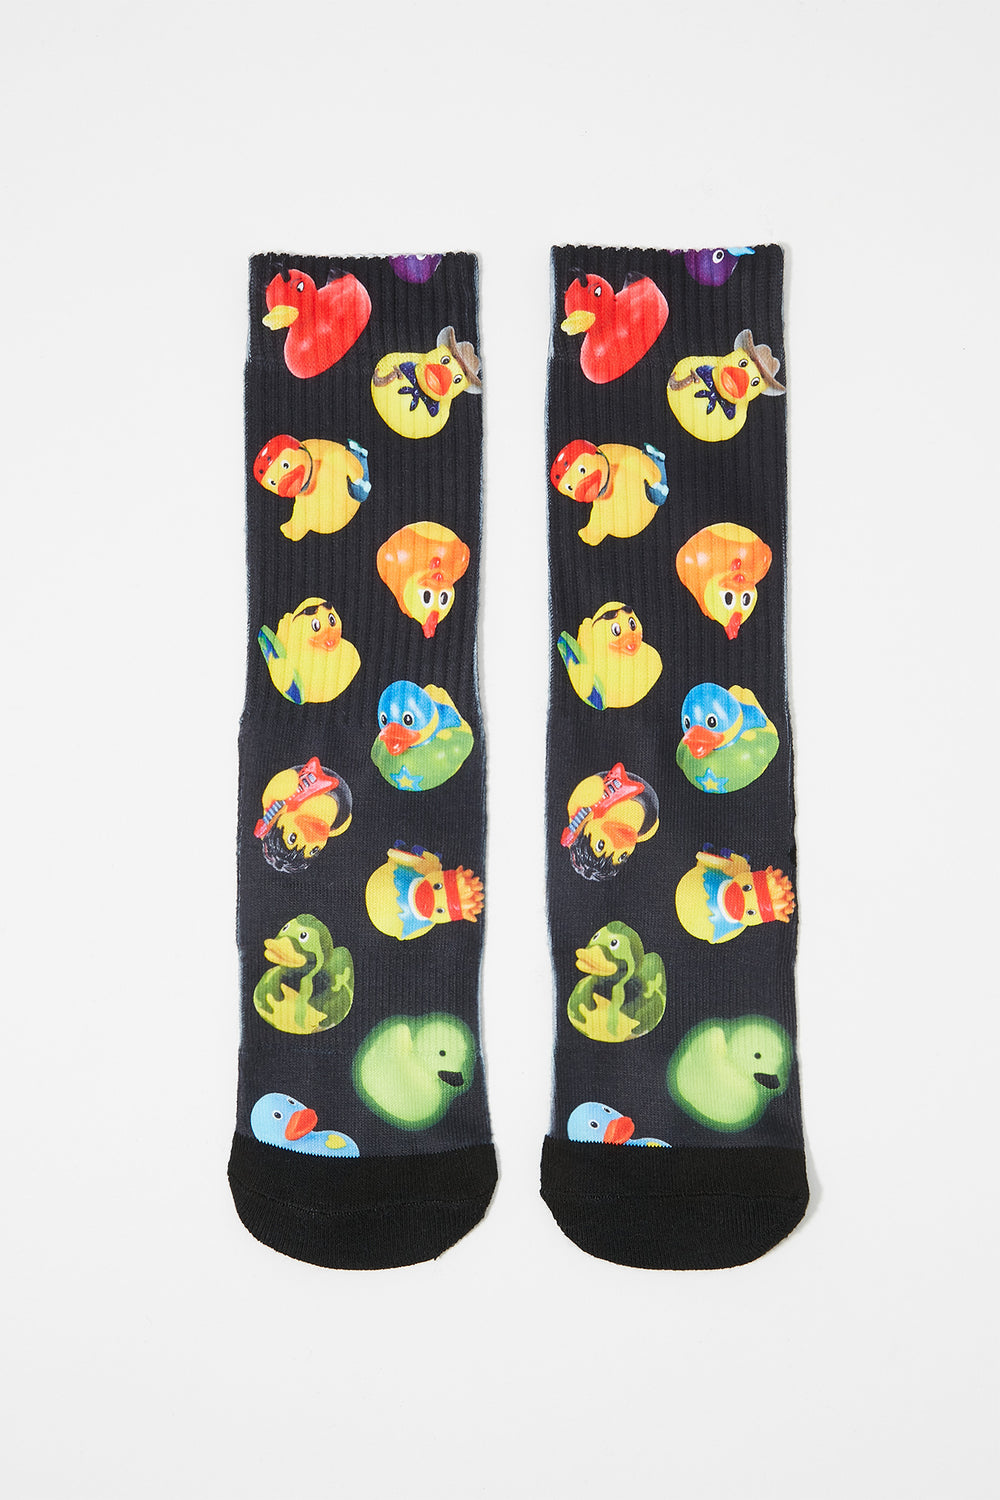 Zoo York Boys Rainbow Crew Socks Black